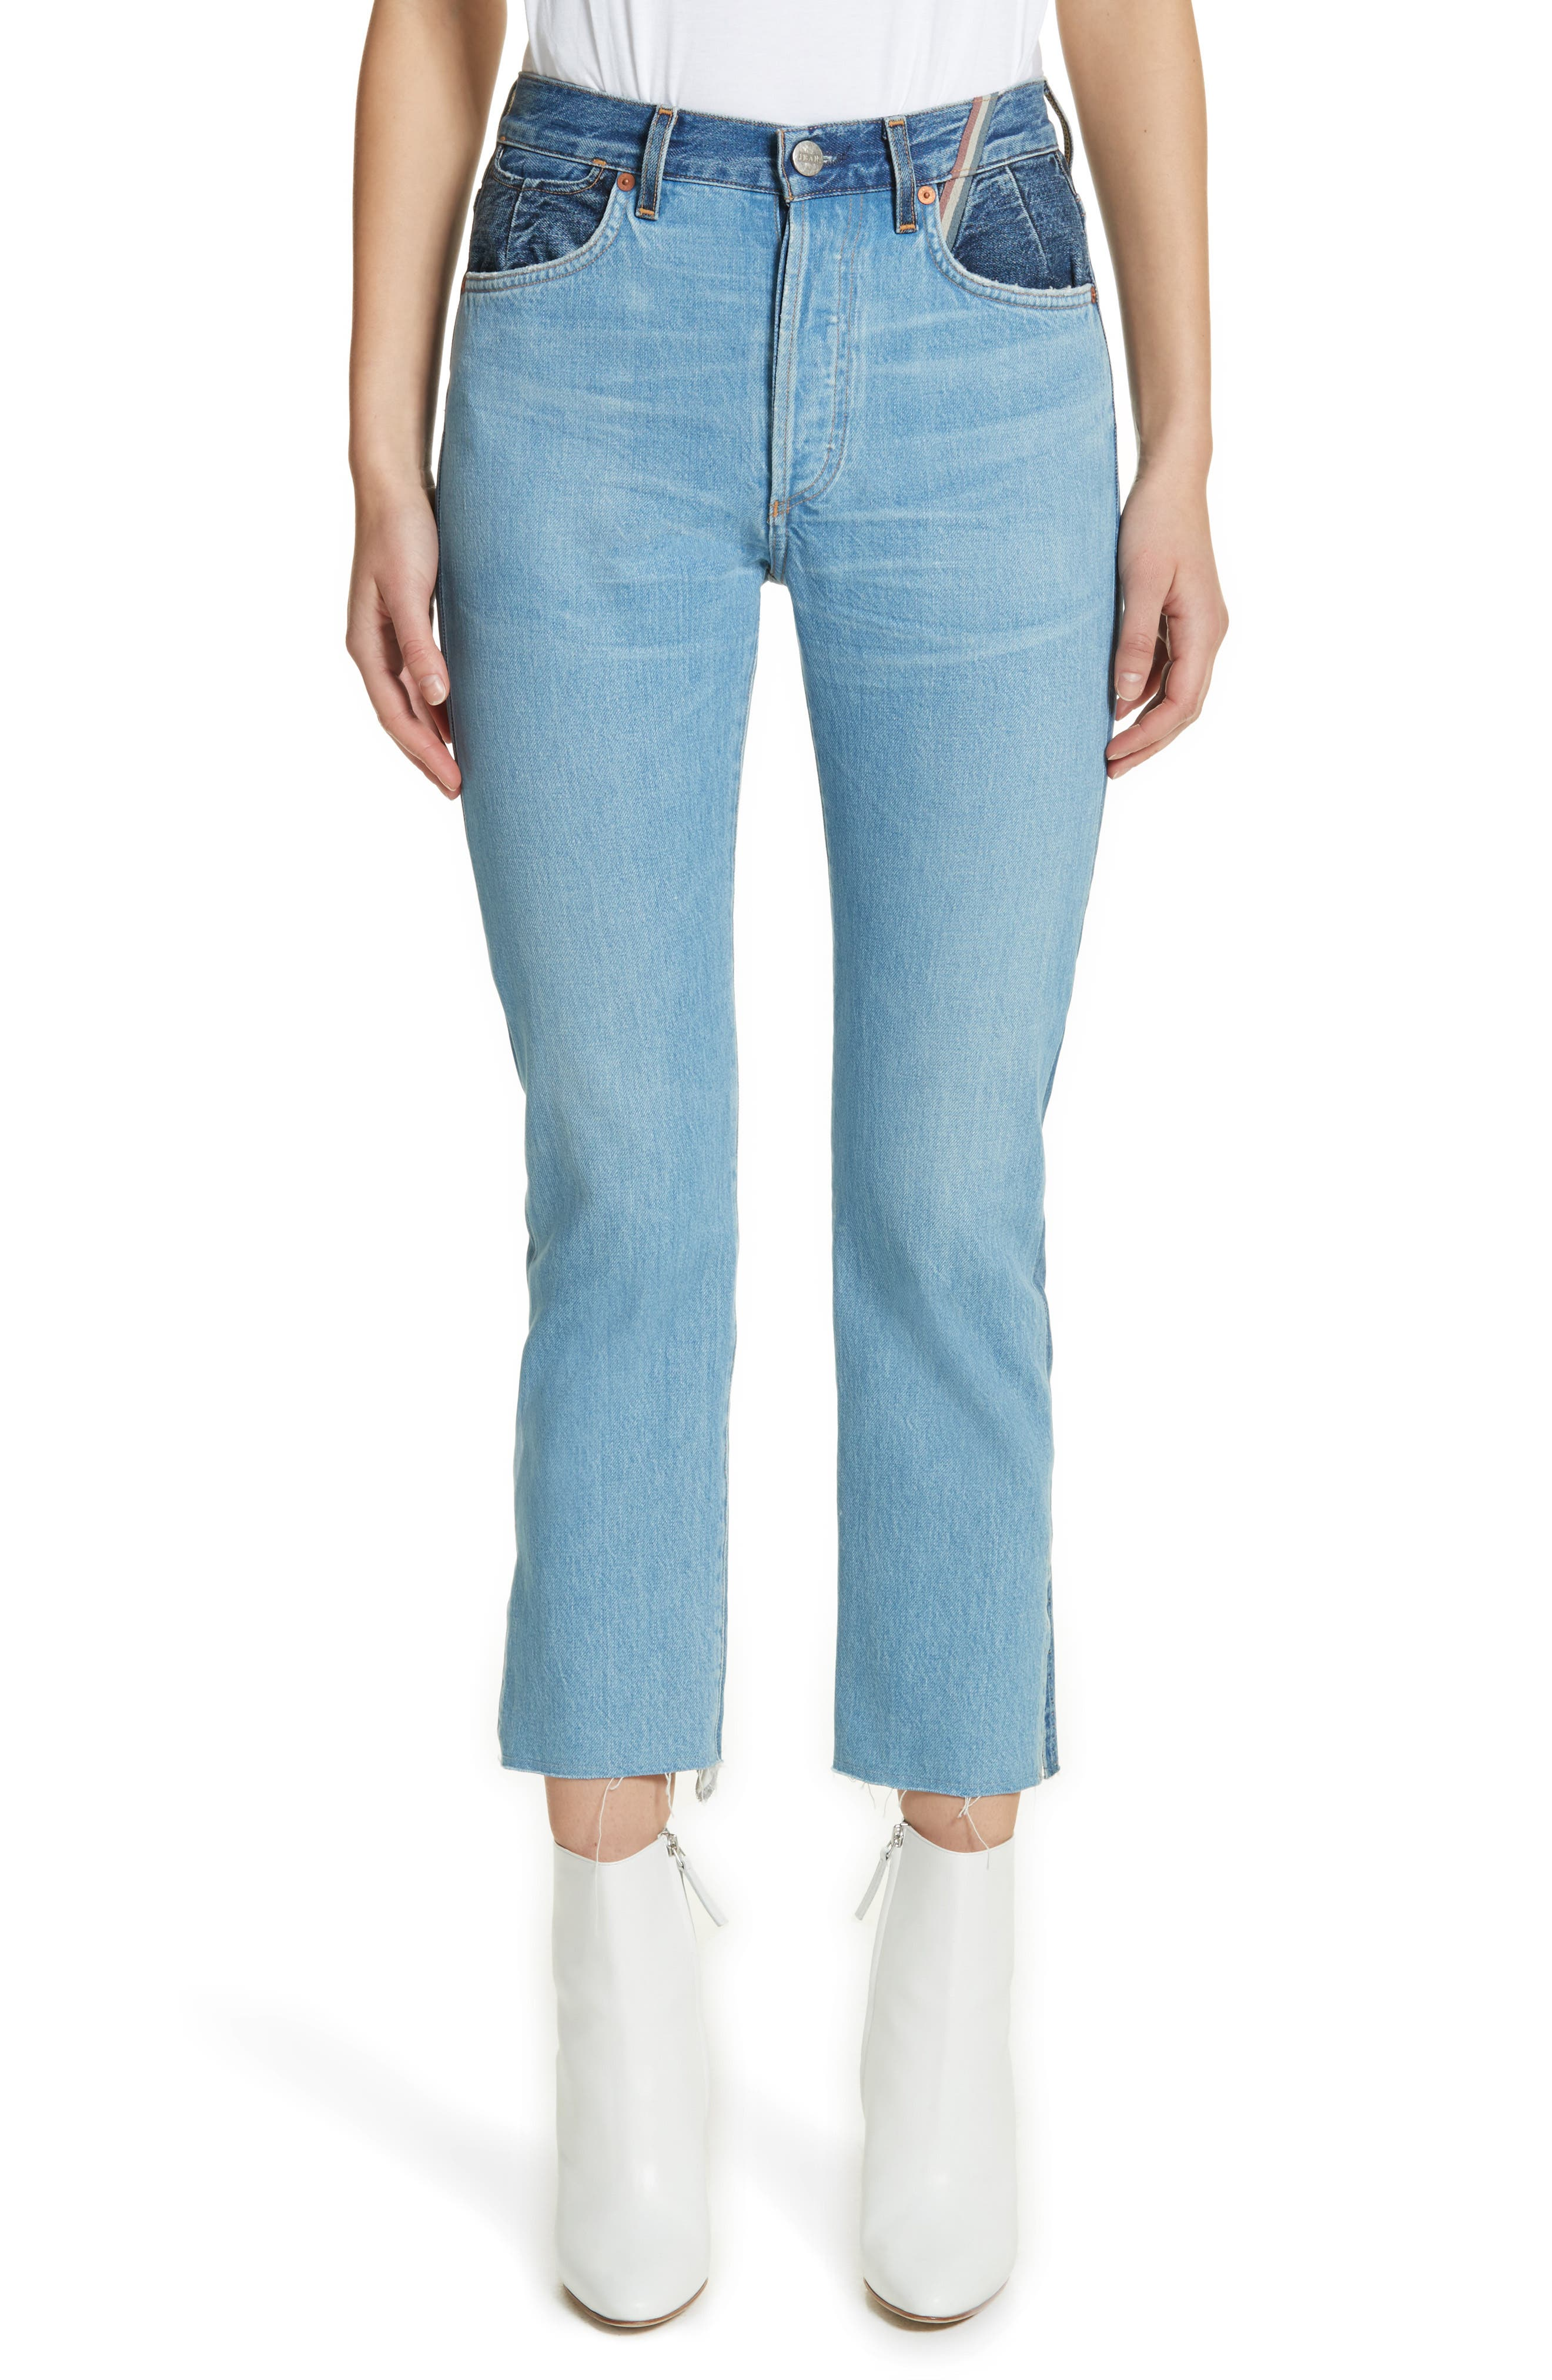 Hunter High Rise Straight Leg Crop Jeans,                         Main,                         color, 424